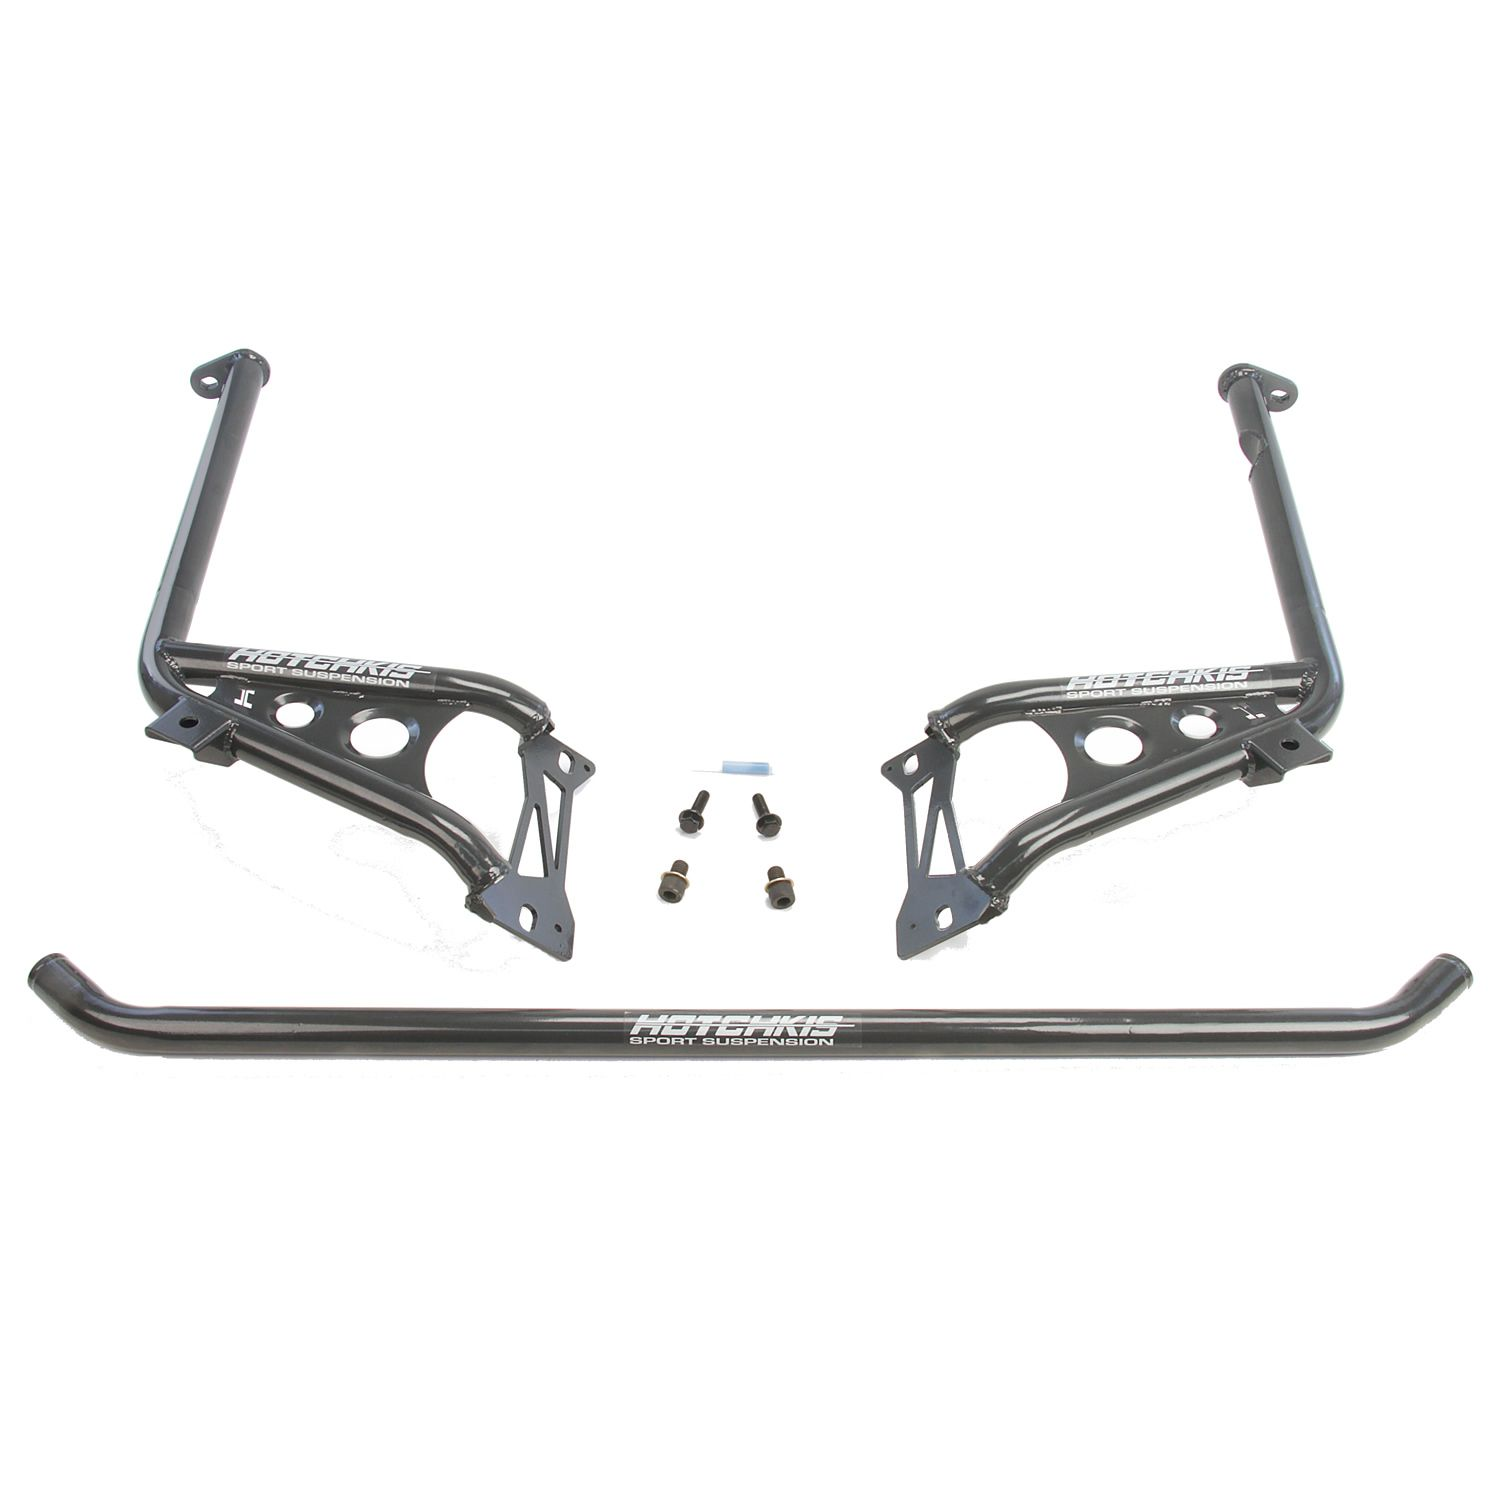 Camaro Nova Chassis Max Handle Bars